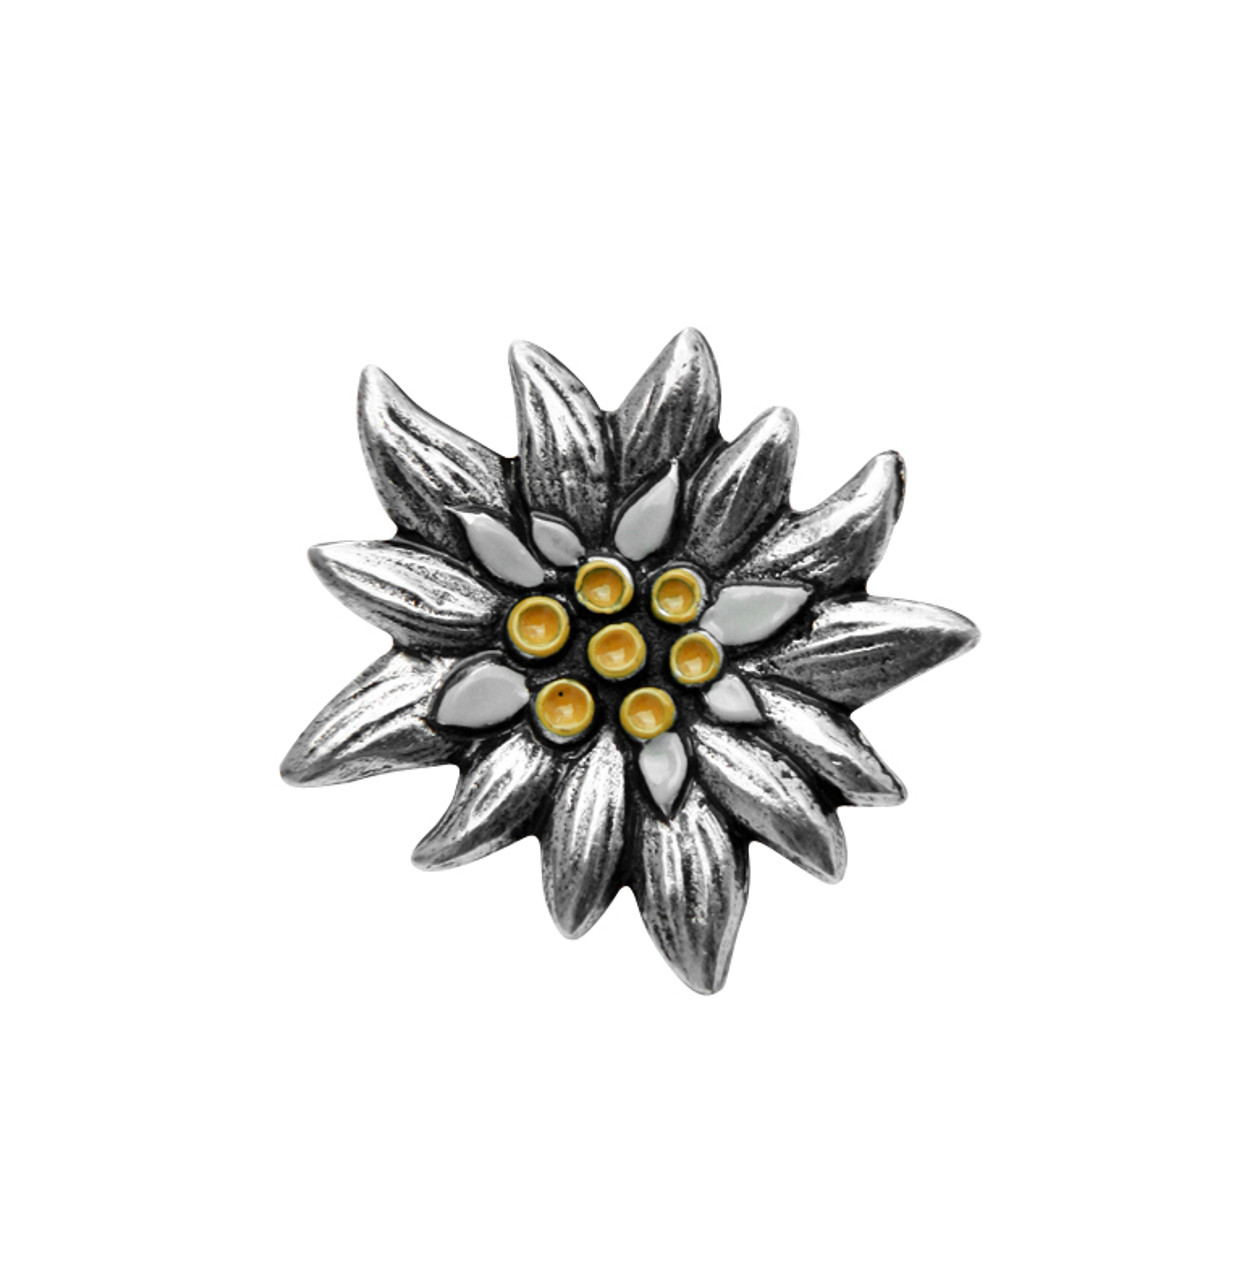 Edelweiss German Pewter Pin